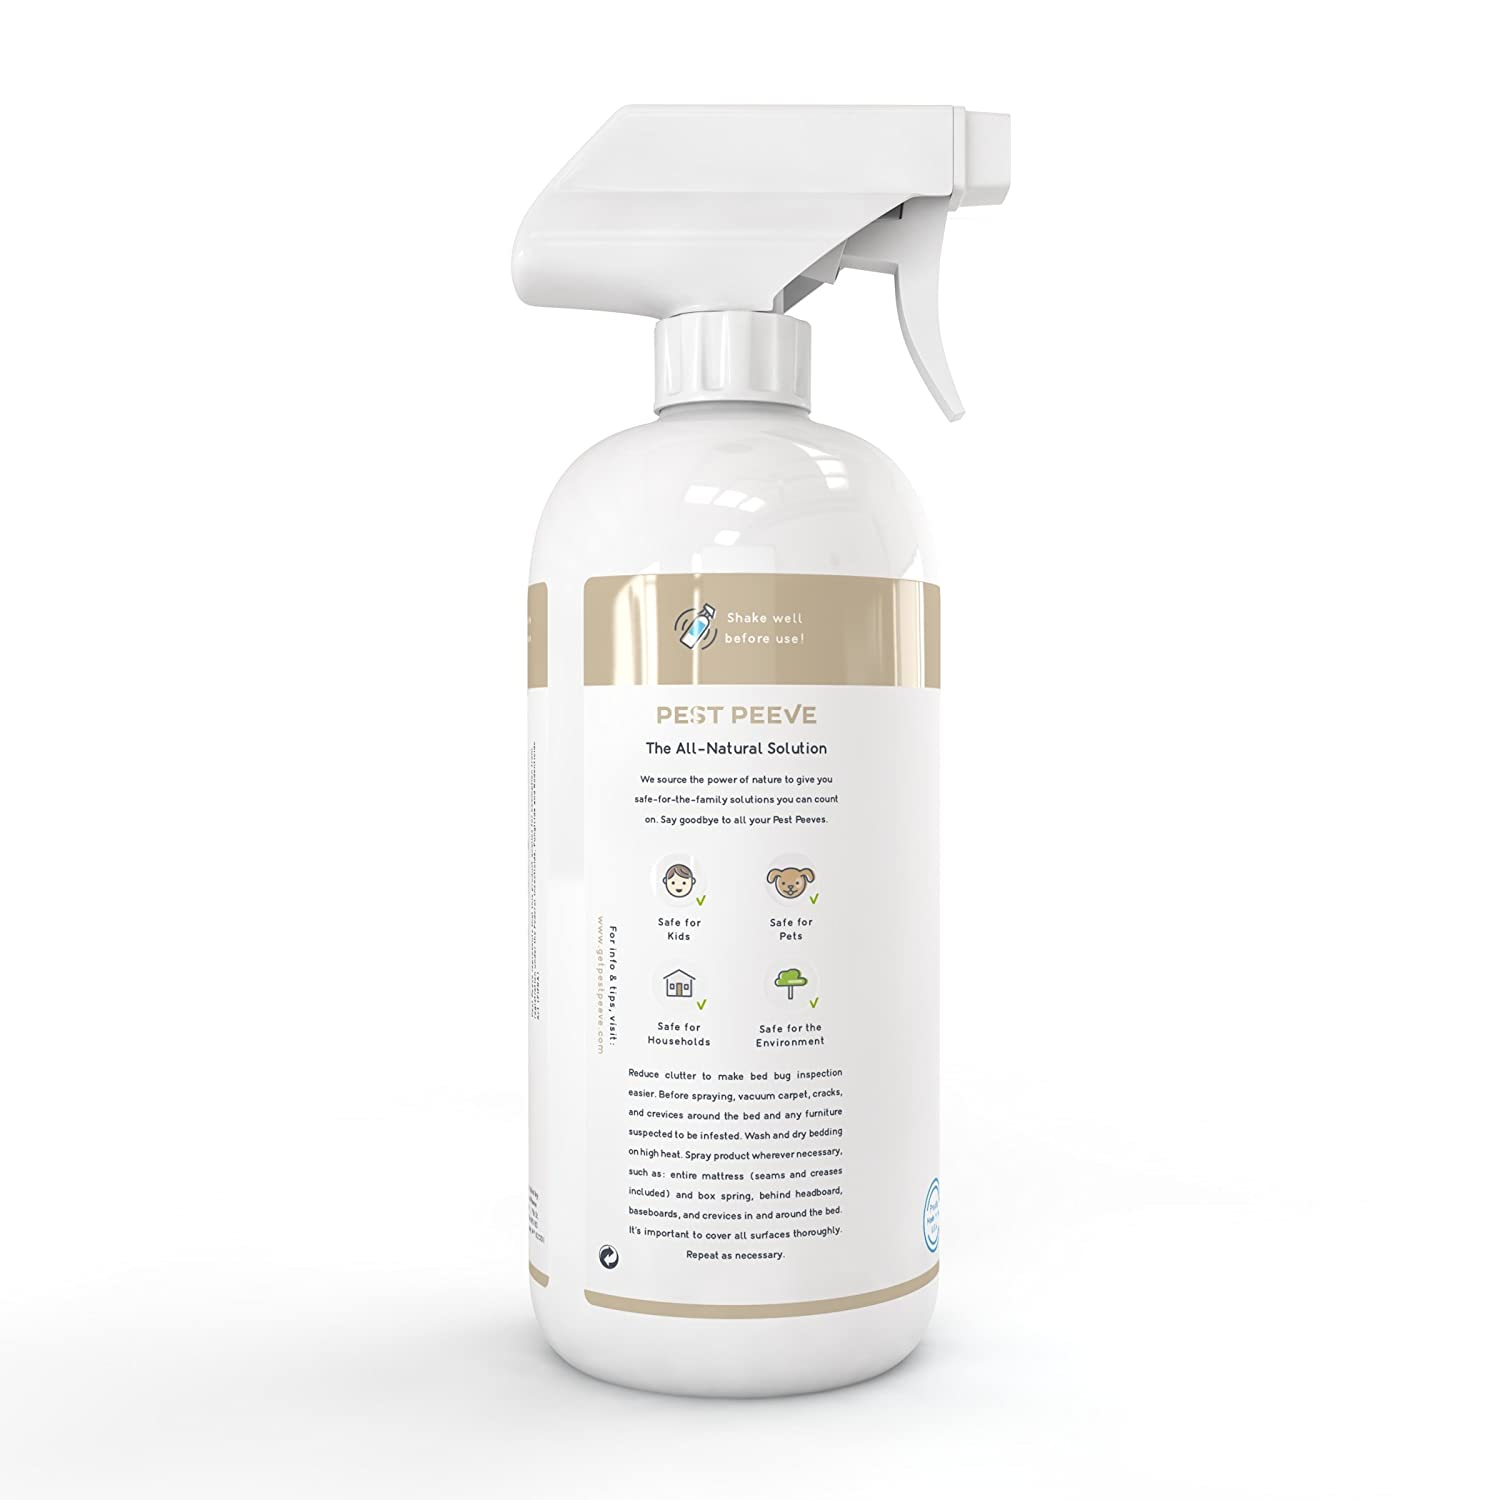 Pest Peeve Bye Bed Bugs Powerful Natural Bedbug Bite Fighters Mosquito Repellent Lotion Rolling Ball Killer Spray Home Defense Treatment Eco Friendly And Safe For The Family 32 Oz